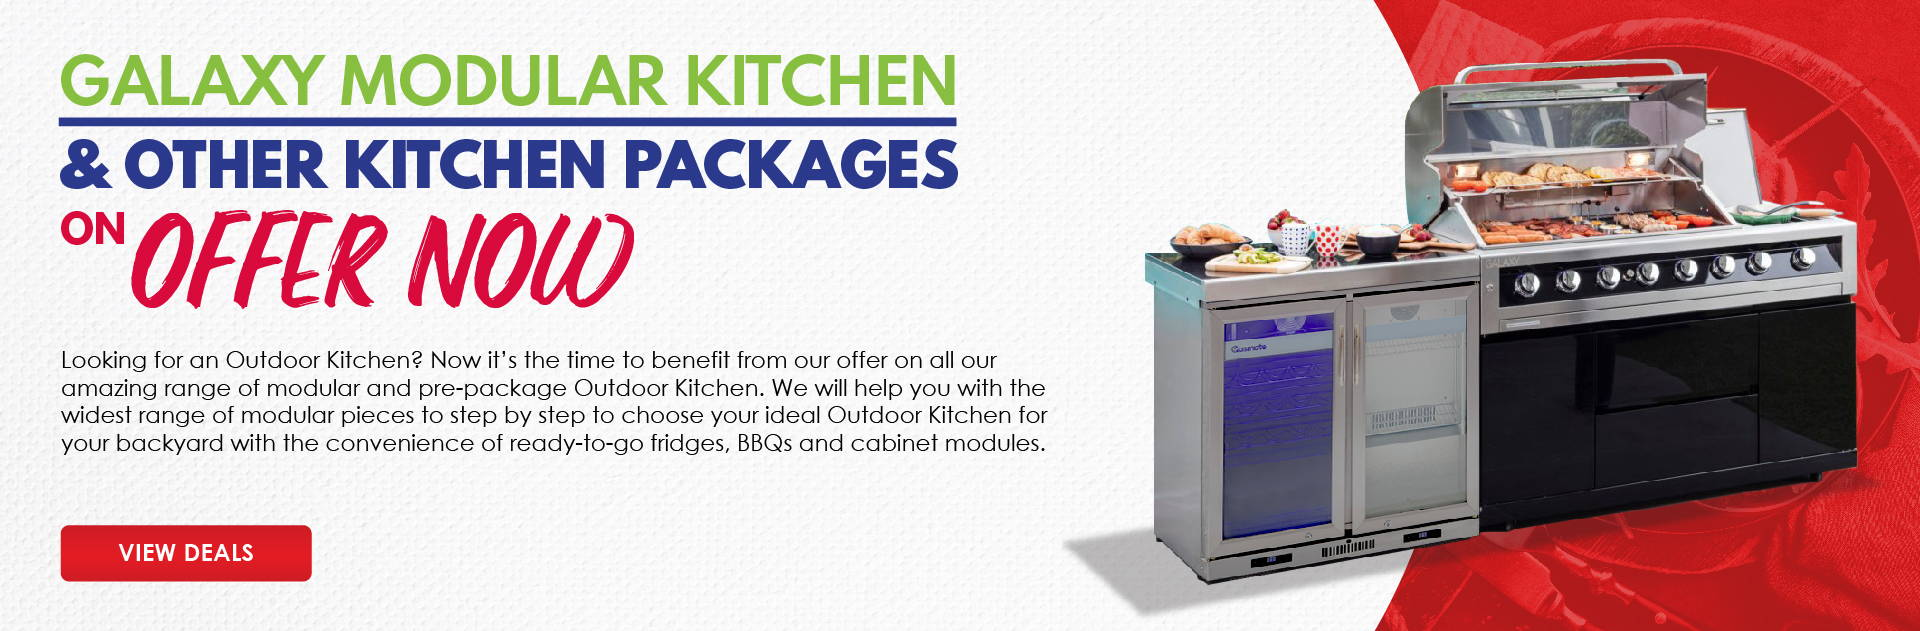 Looking for an Outdoor Kitchens ? Now its the time to benefit from our offer on modular and pre-package Outdoor Kitchen. We will help you step by step to choose your ideal Outdoor Kitchen for your backyeard.